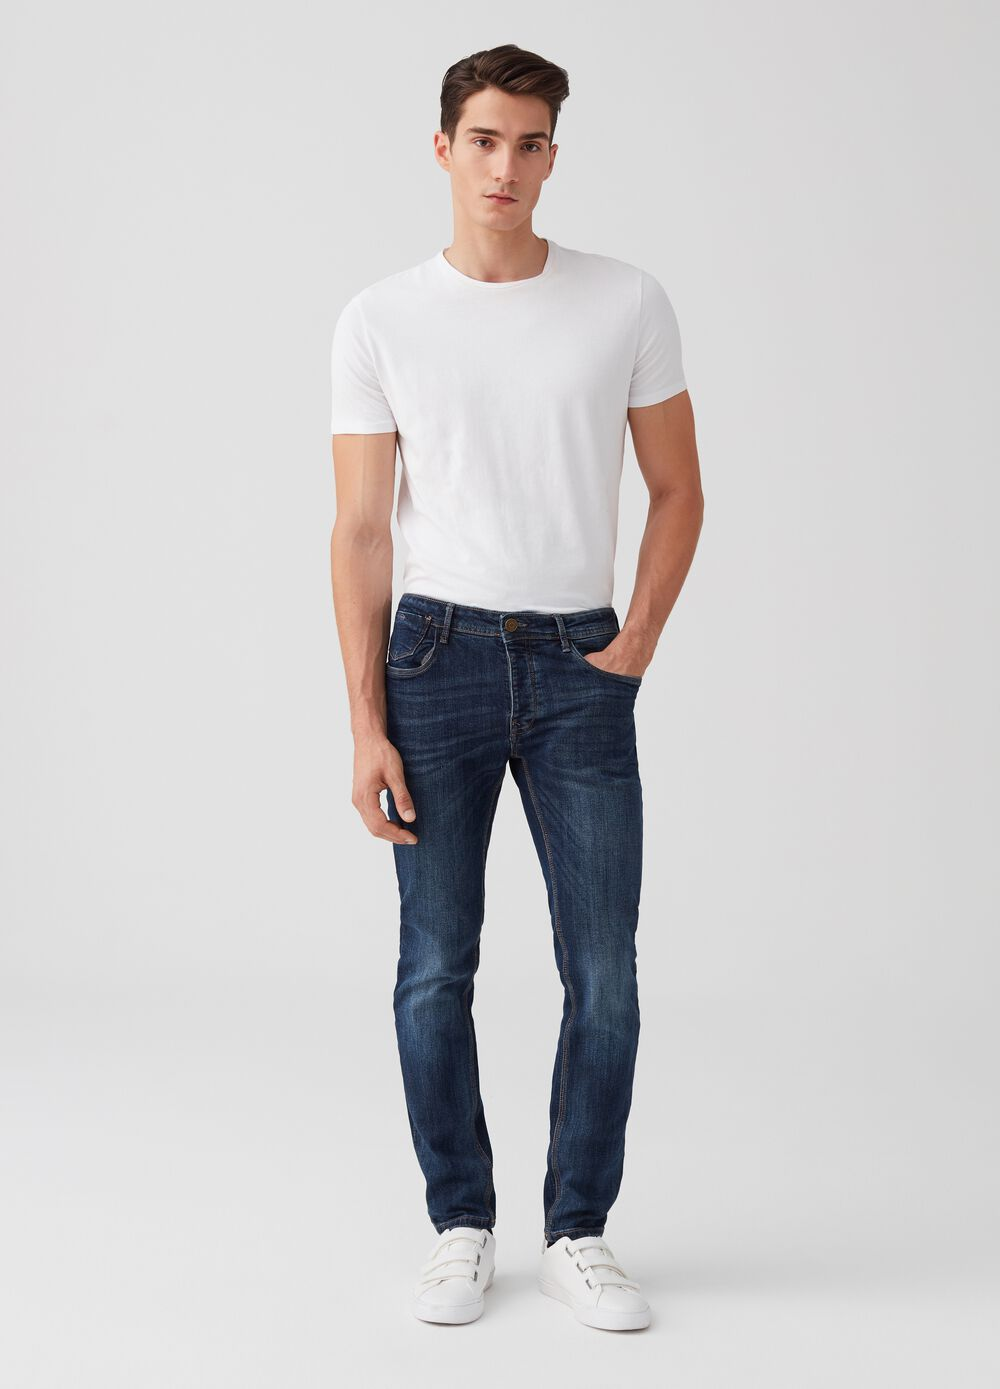 5-pocket, skinny fit jeans